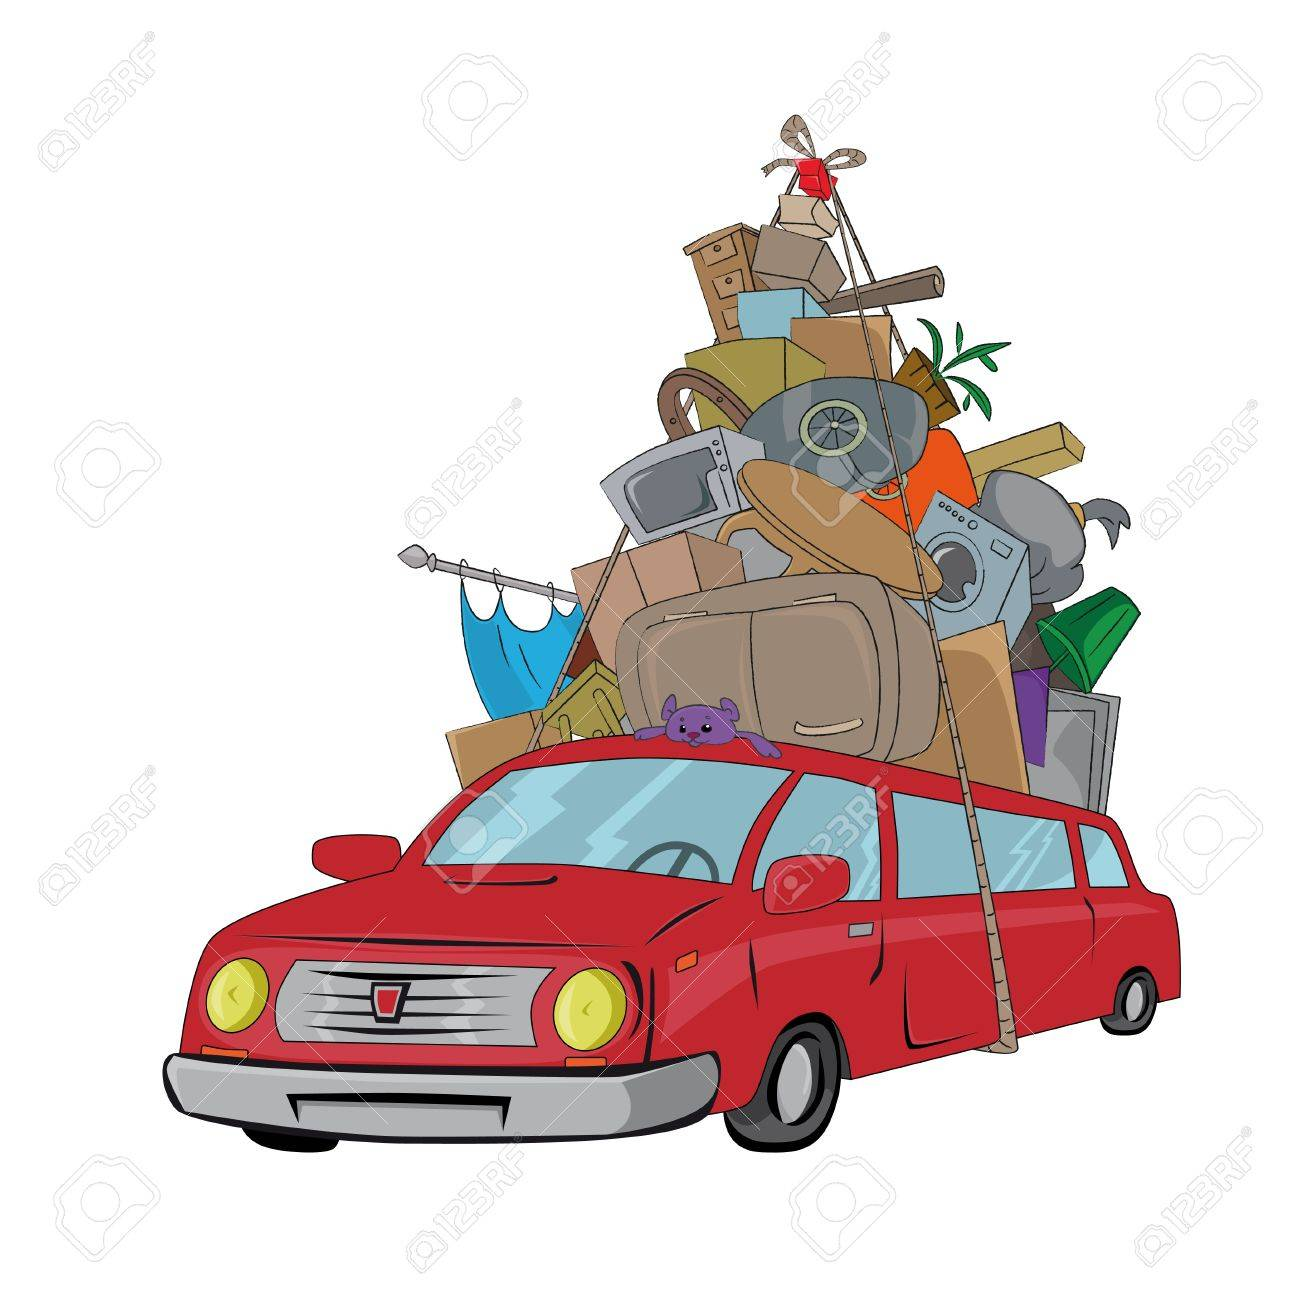 Moving Furniture Clipart Vehicle Transporting The Stock Vector